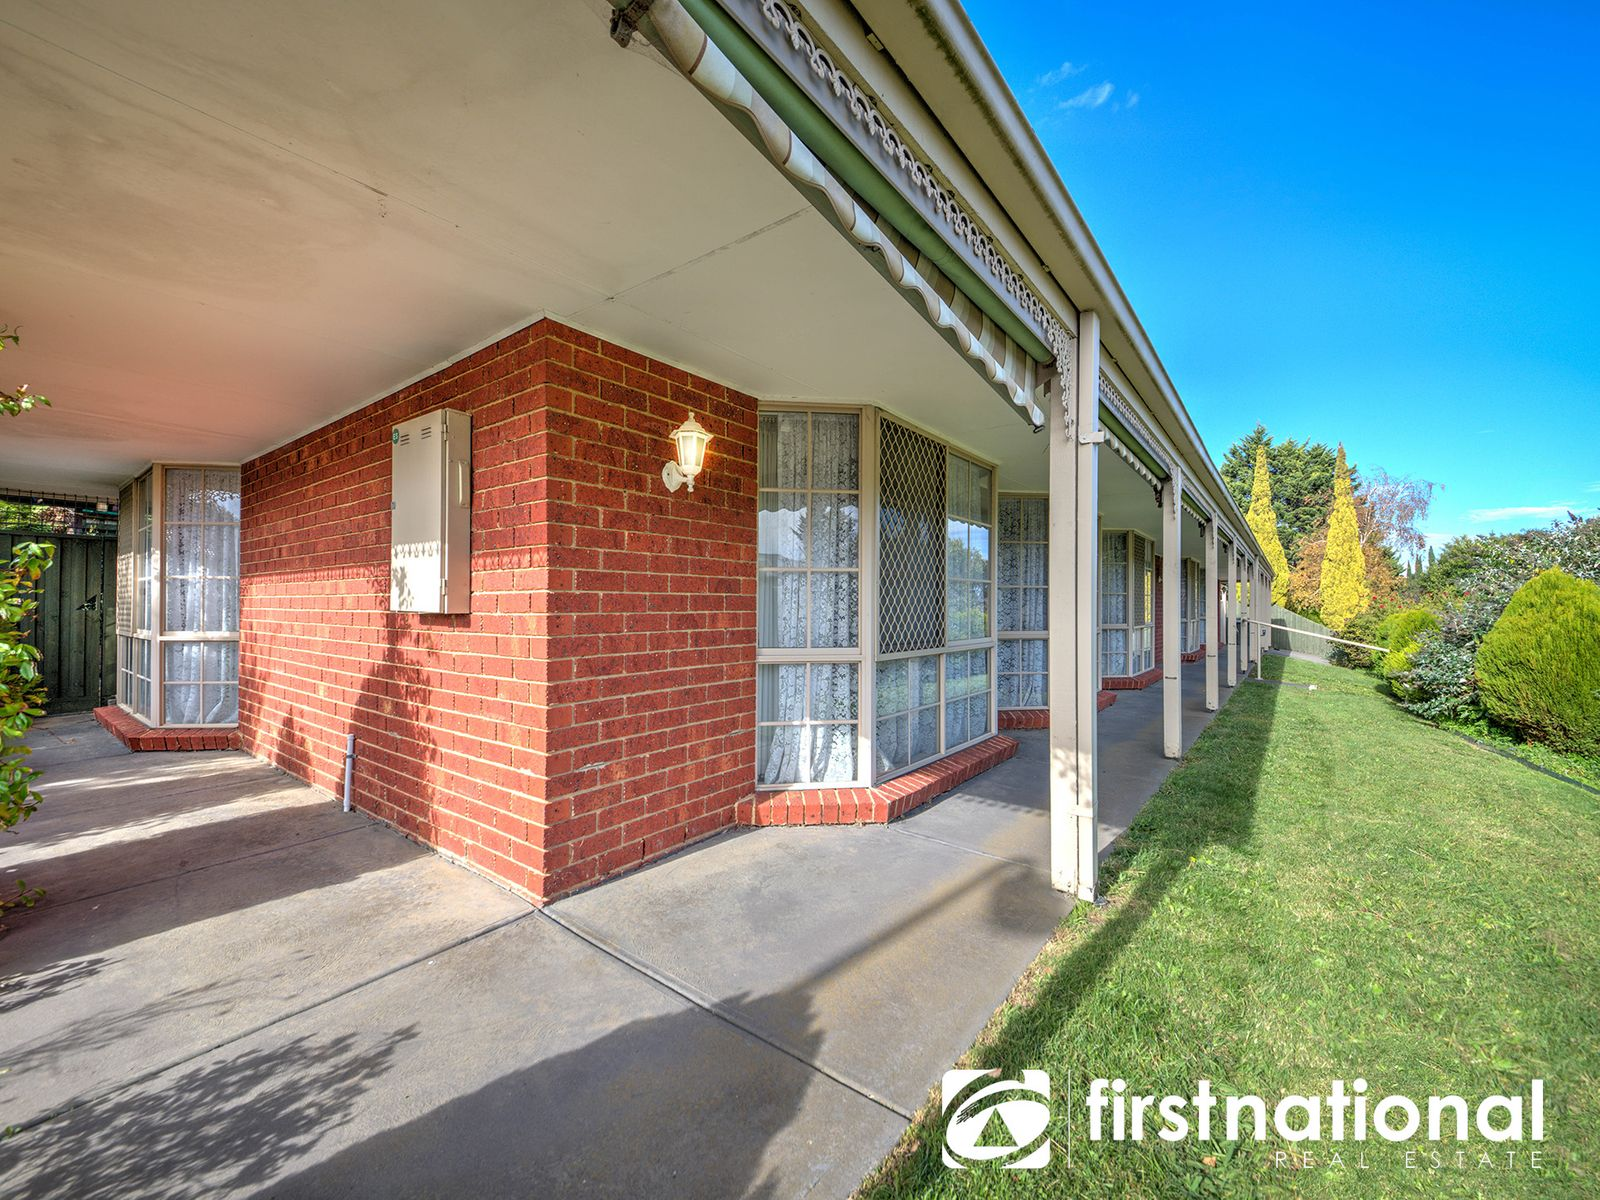 19 Millgrove Way, Berwick, VIC 3806